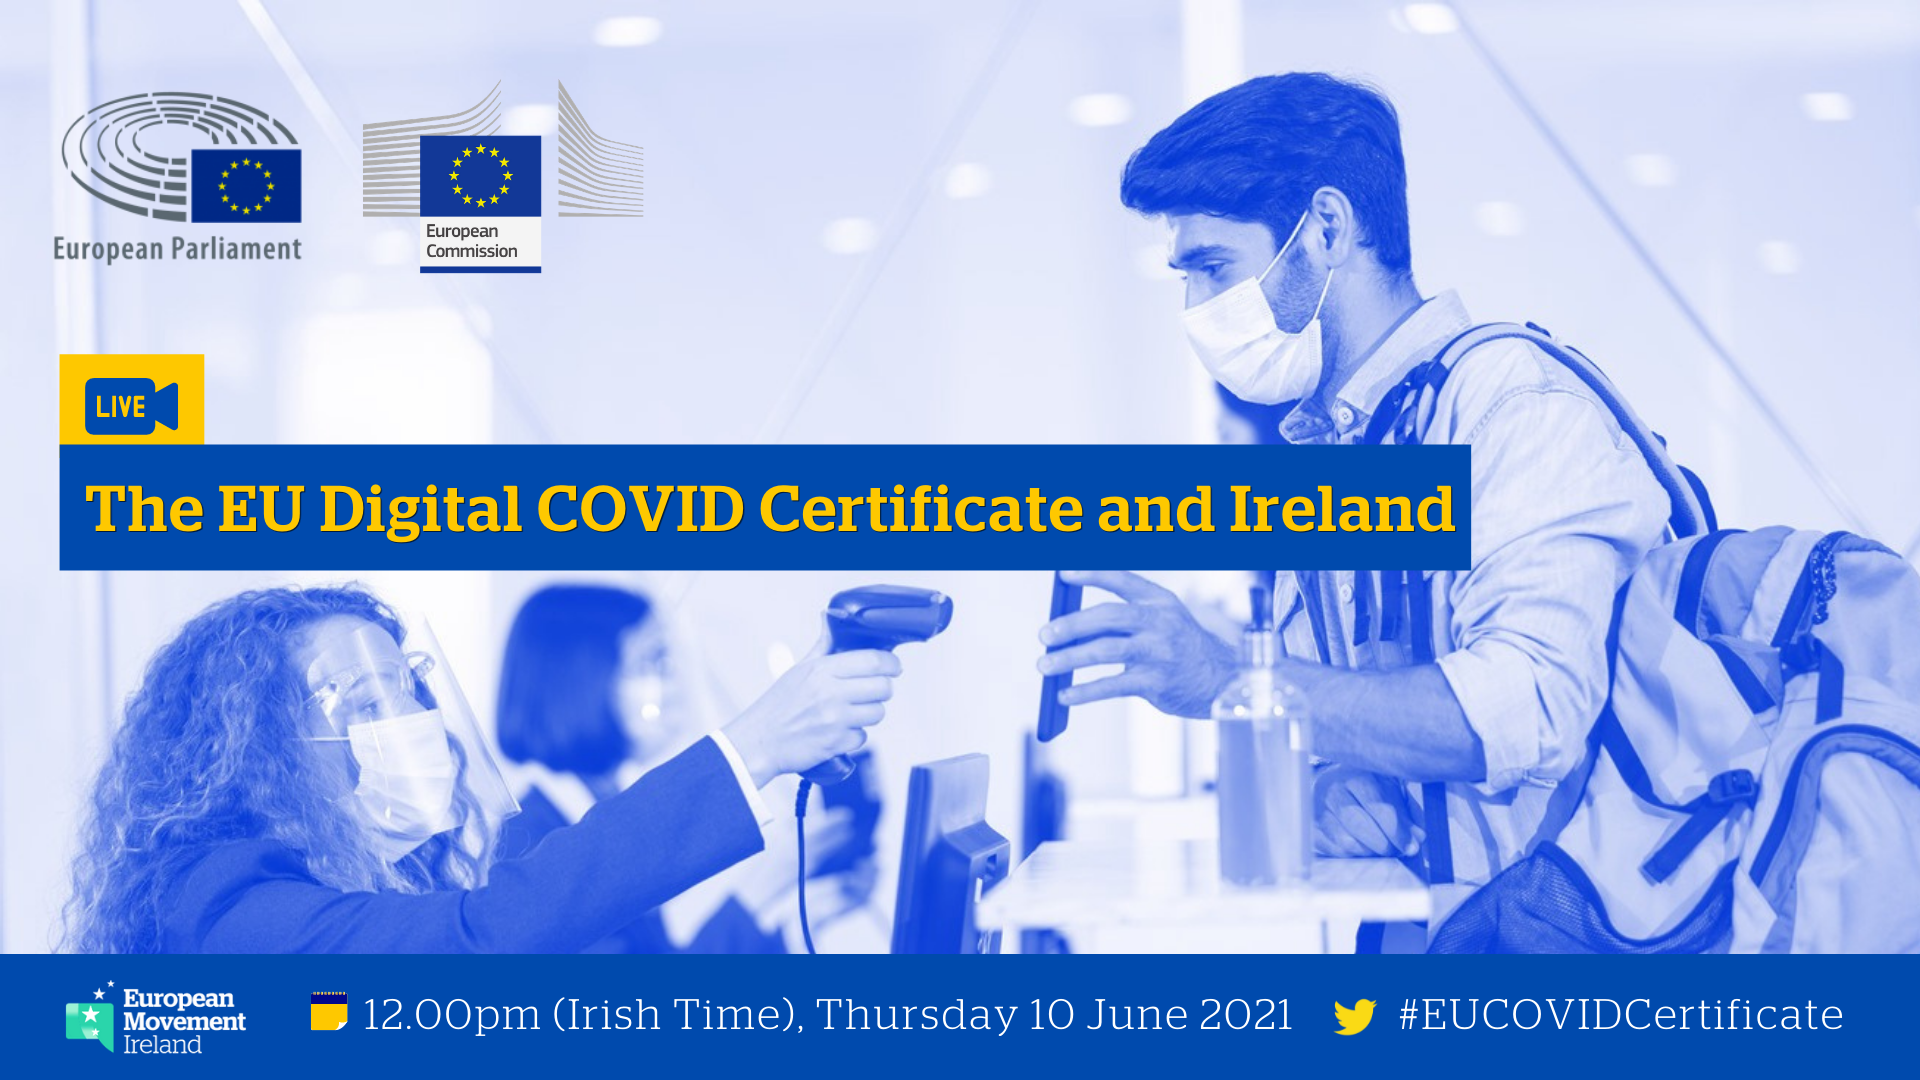 Promotional image for the online panel discussion on the EU Digital COVID Certificate and Ireland